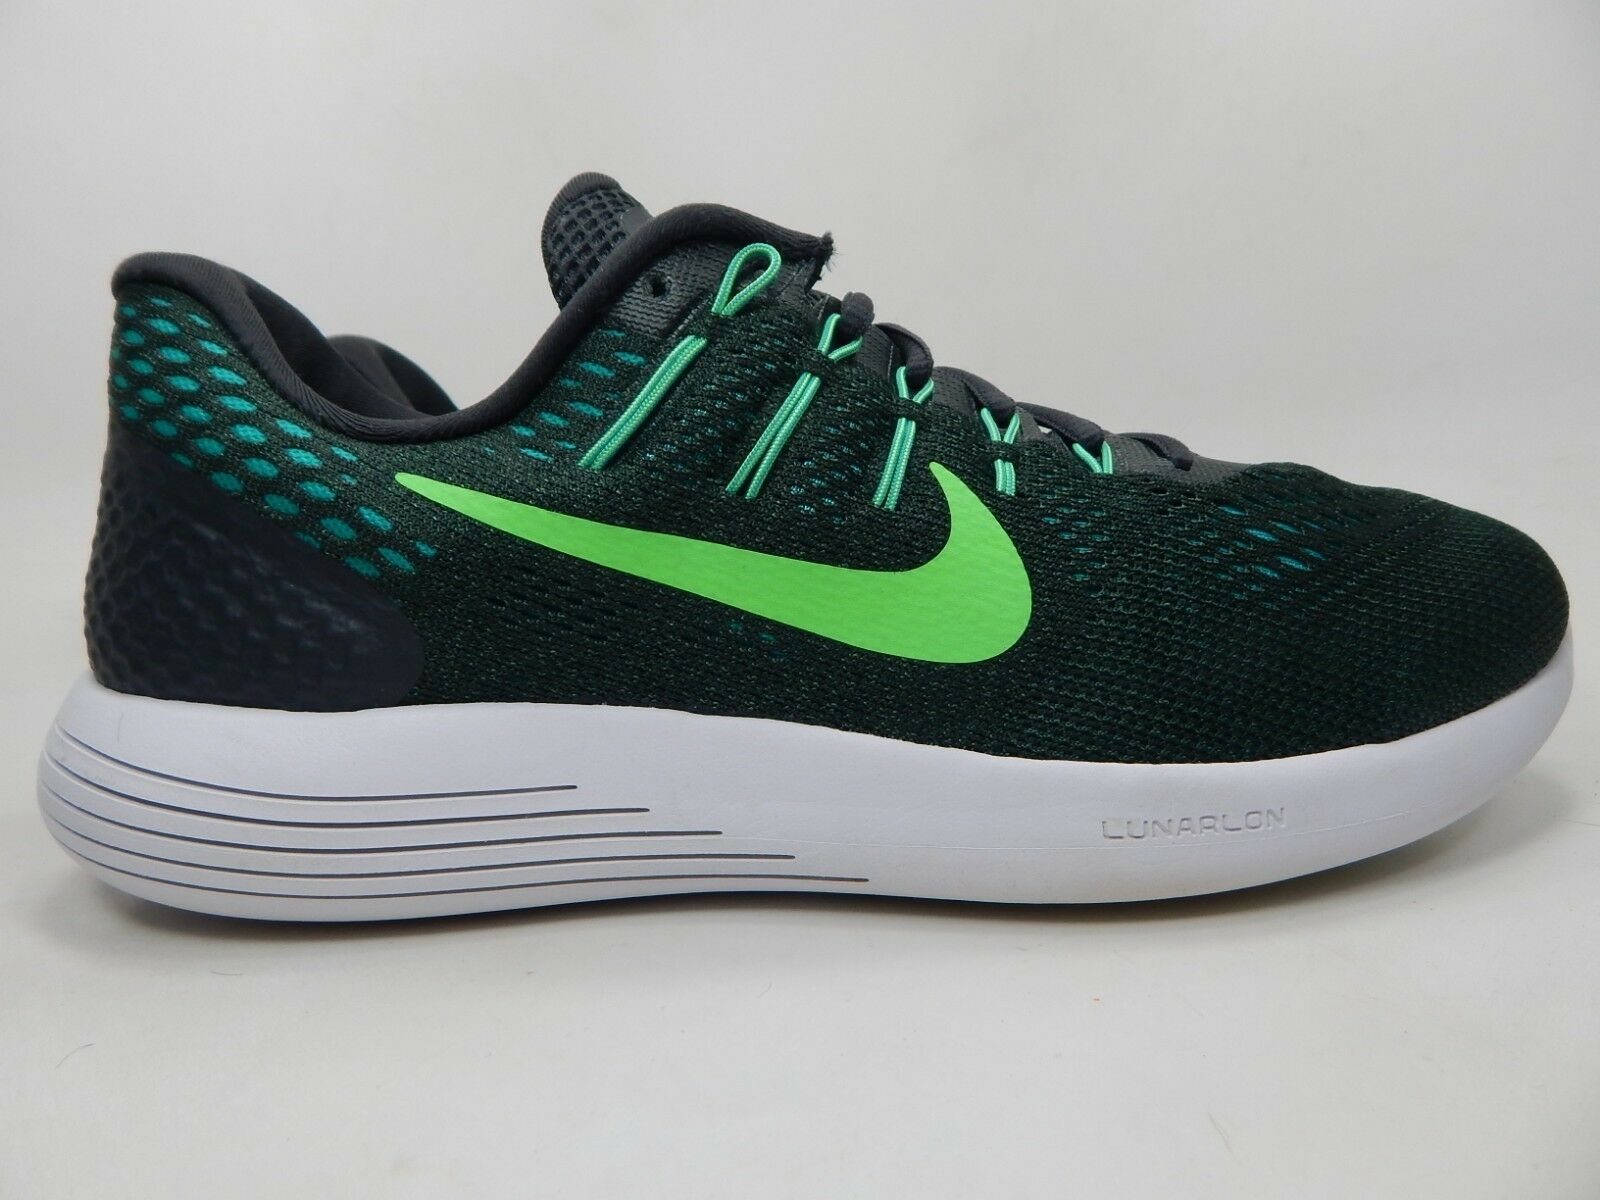 100% authentic 36e43 43413 Nike LunarGlide 8 Size 8.5 M (D) EU 42 Men's Running shoes Green 843725